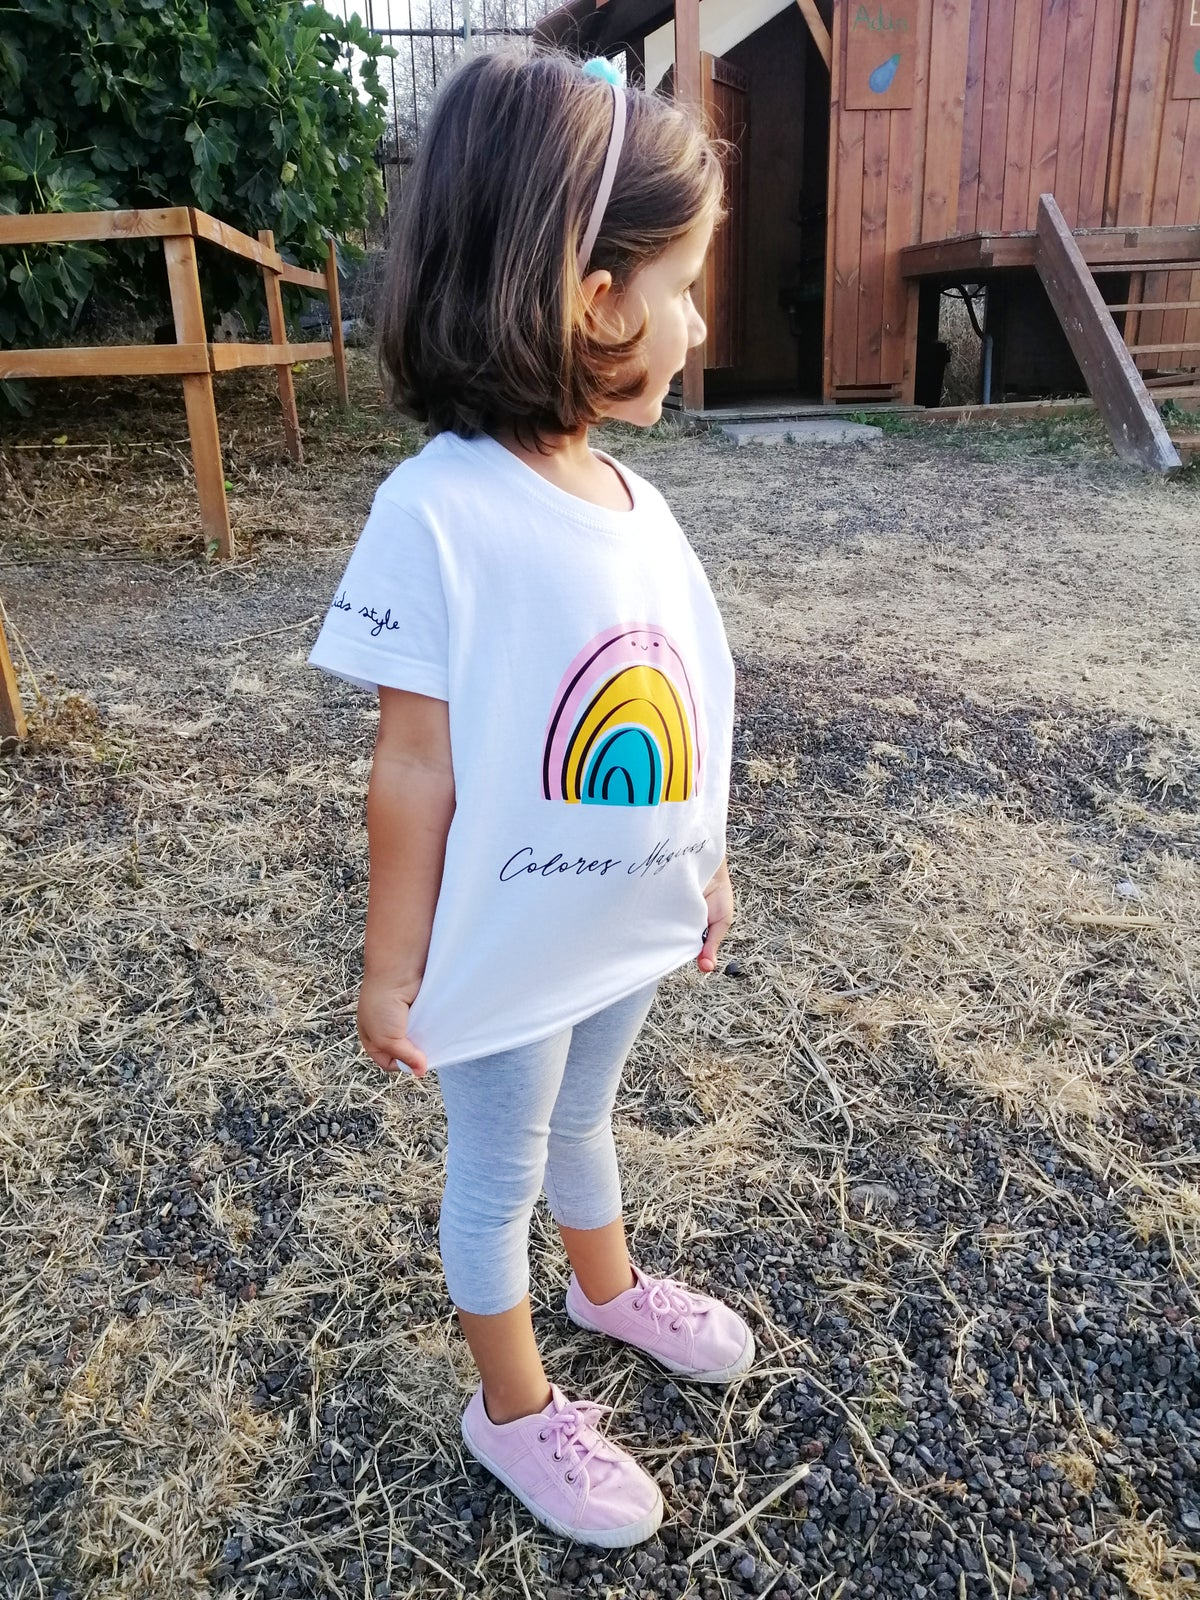 ARCOIRIS - Camiseta personalizable